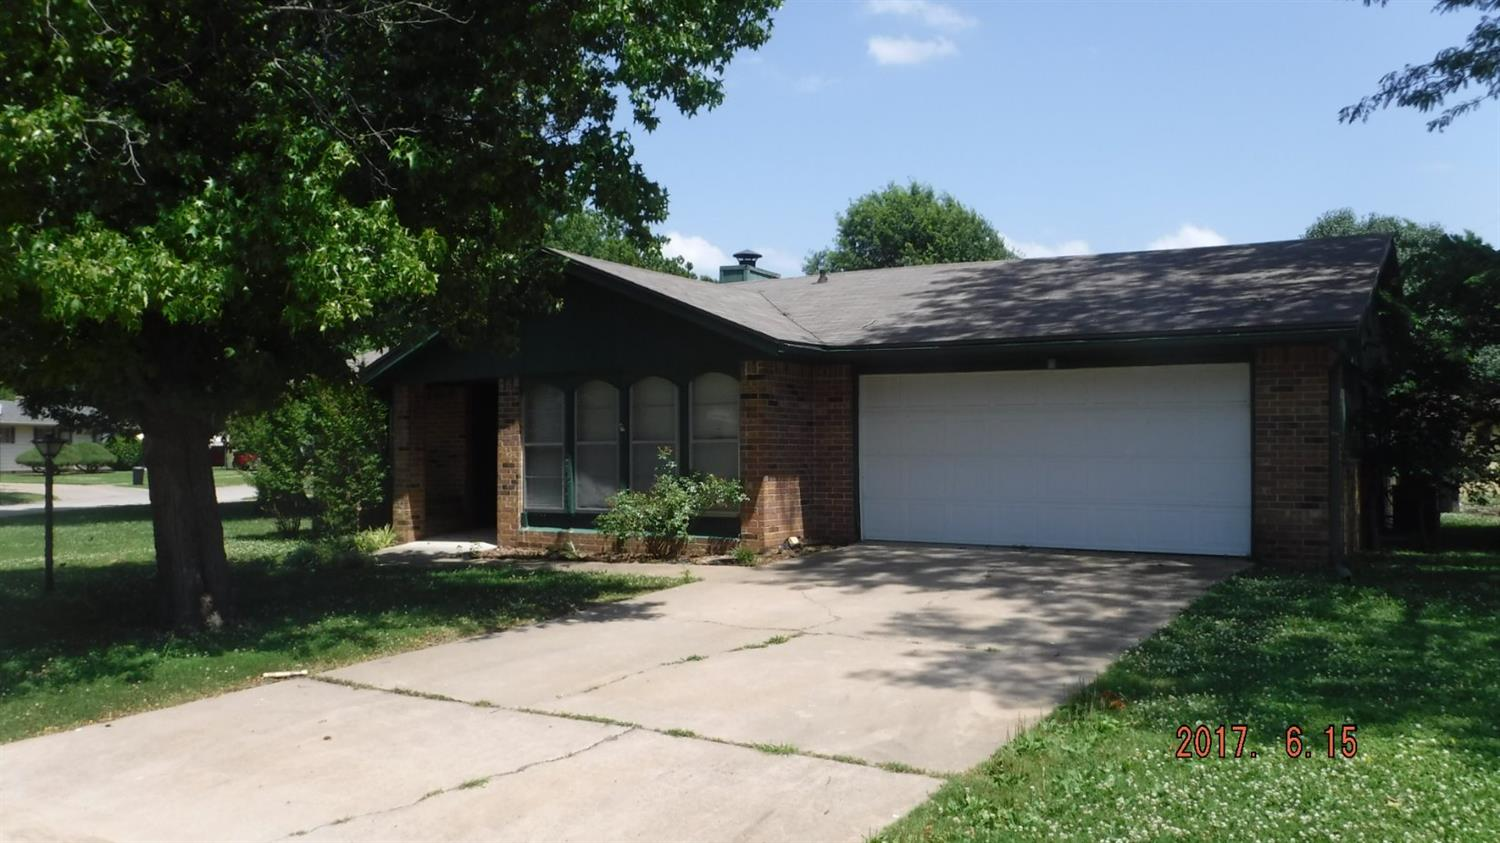 952 Crescent Drive, Independence, KS 67301